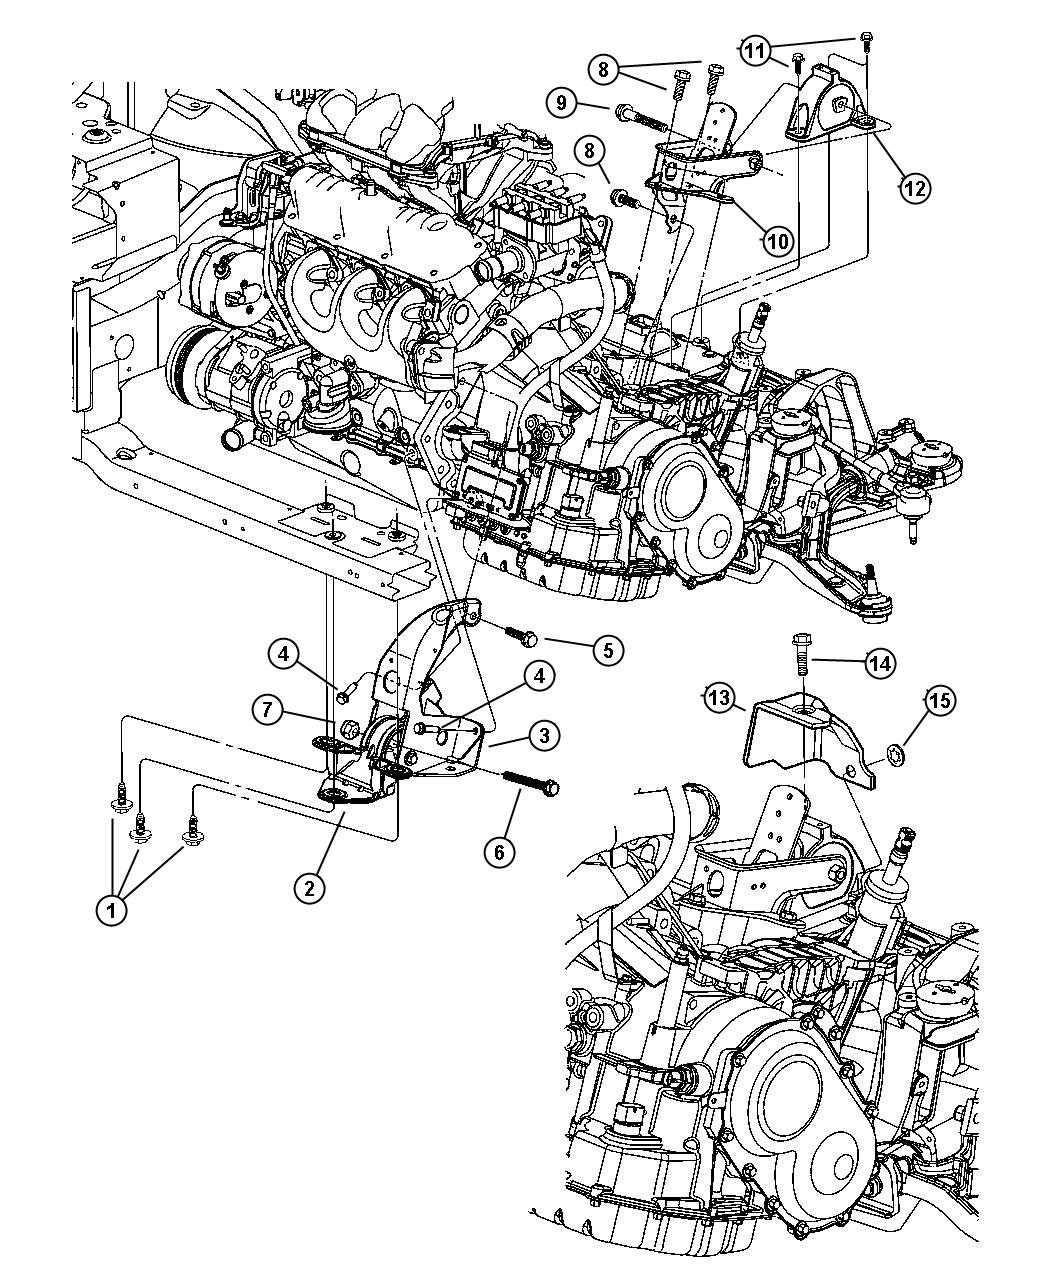 2008 chrysler town and country transmission diagram wiring diagram for 2004 dodge grand caravan at